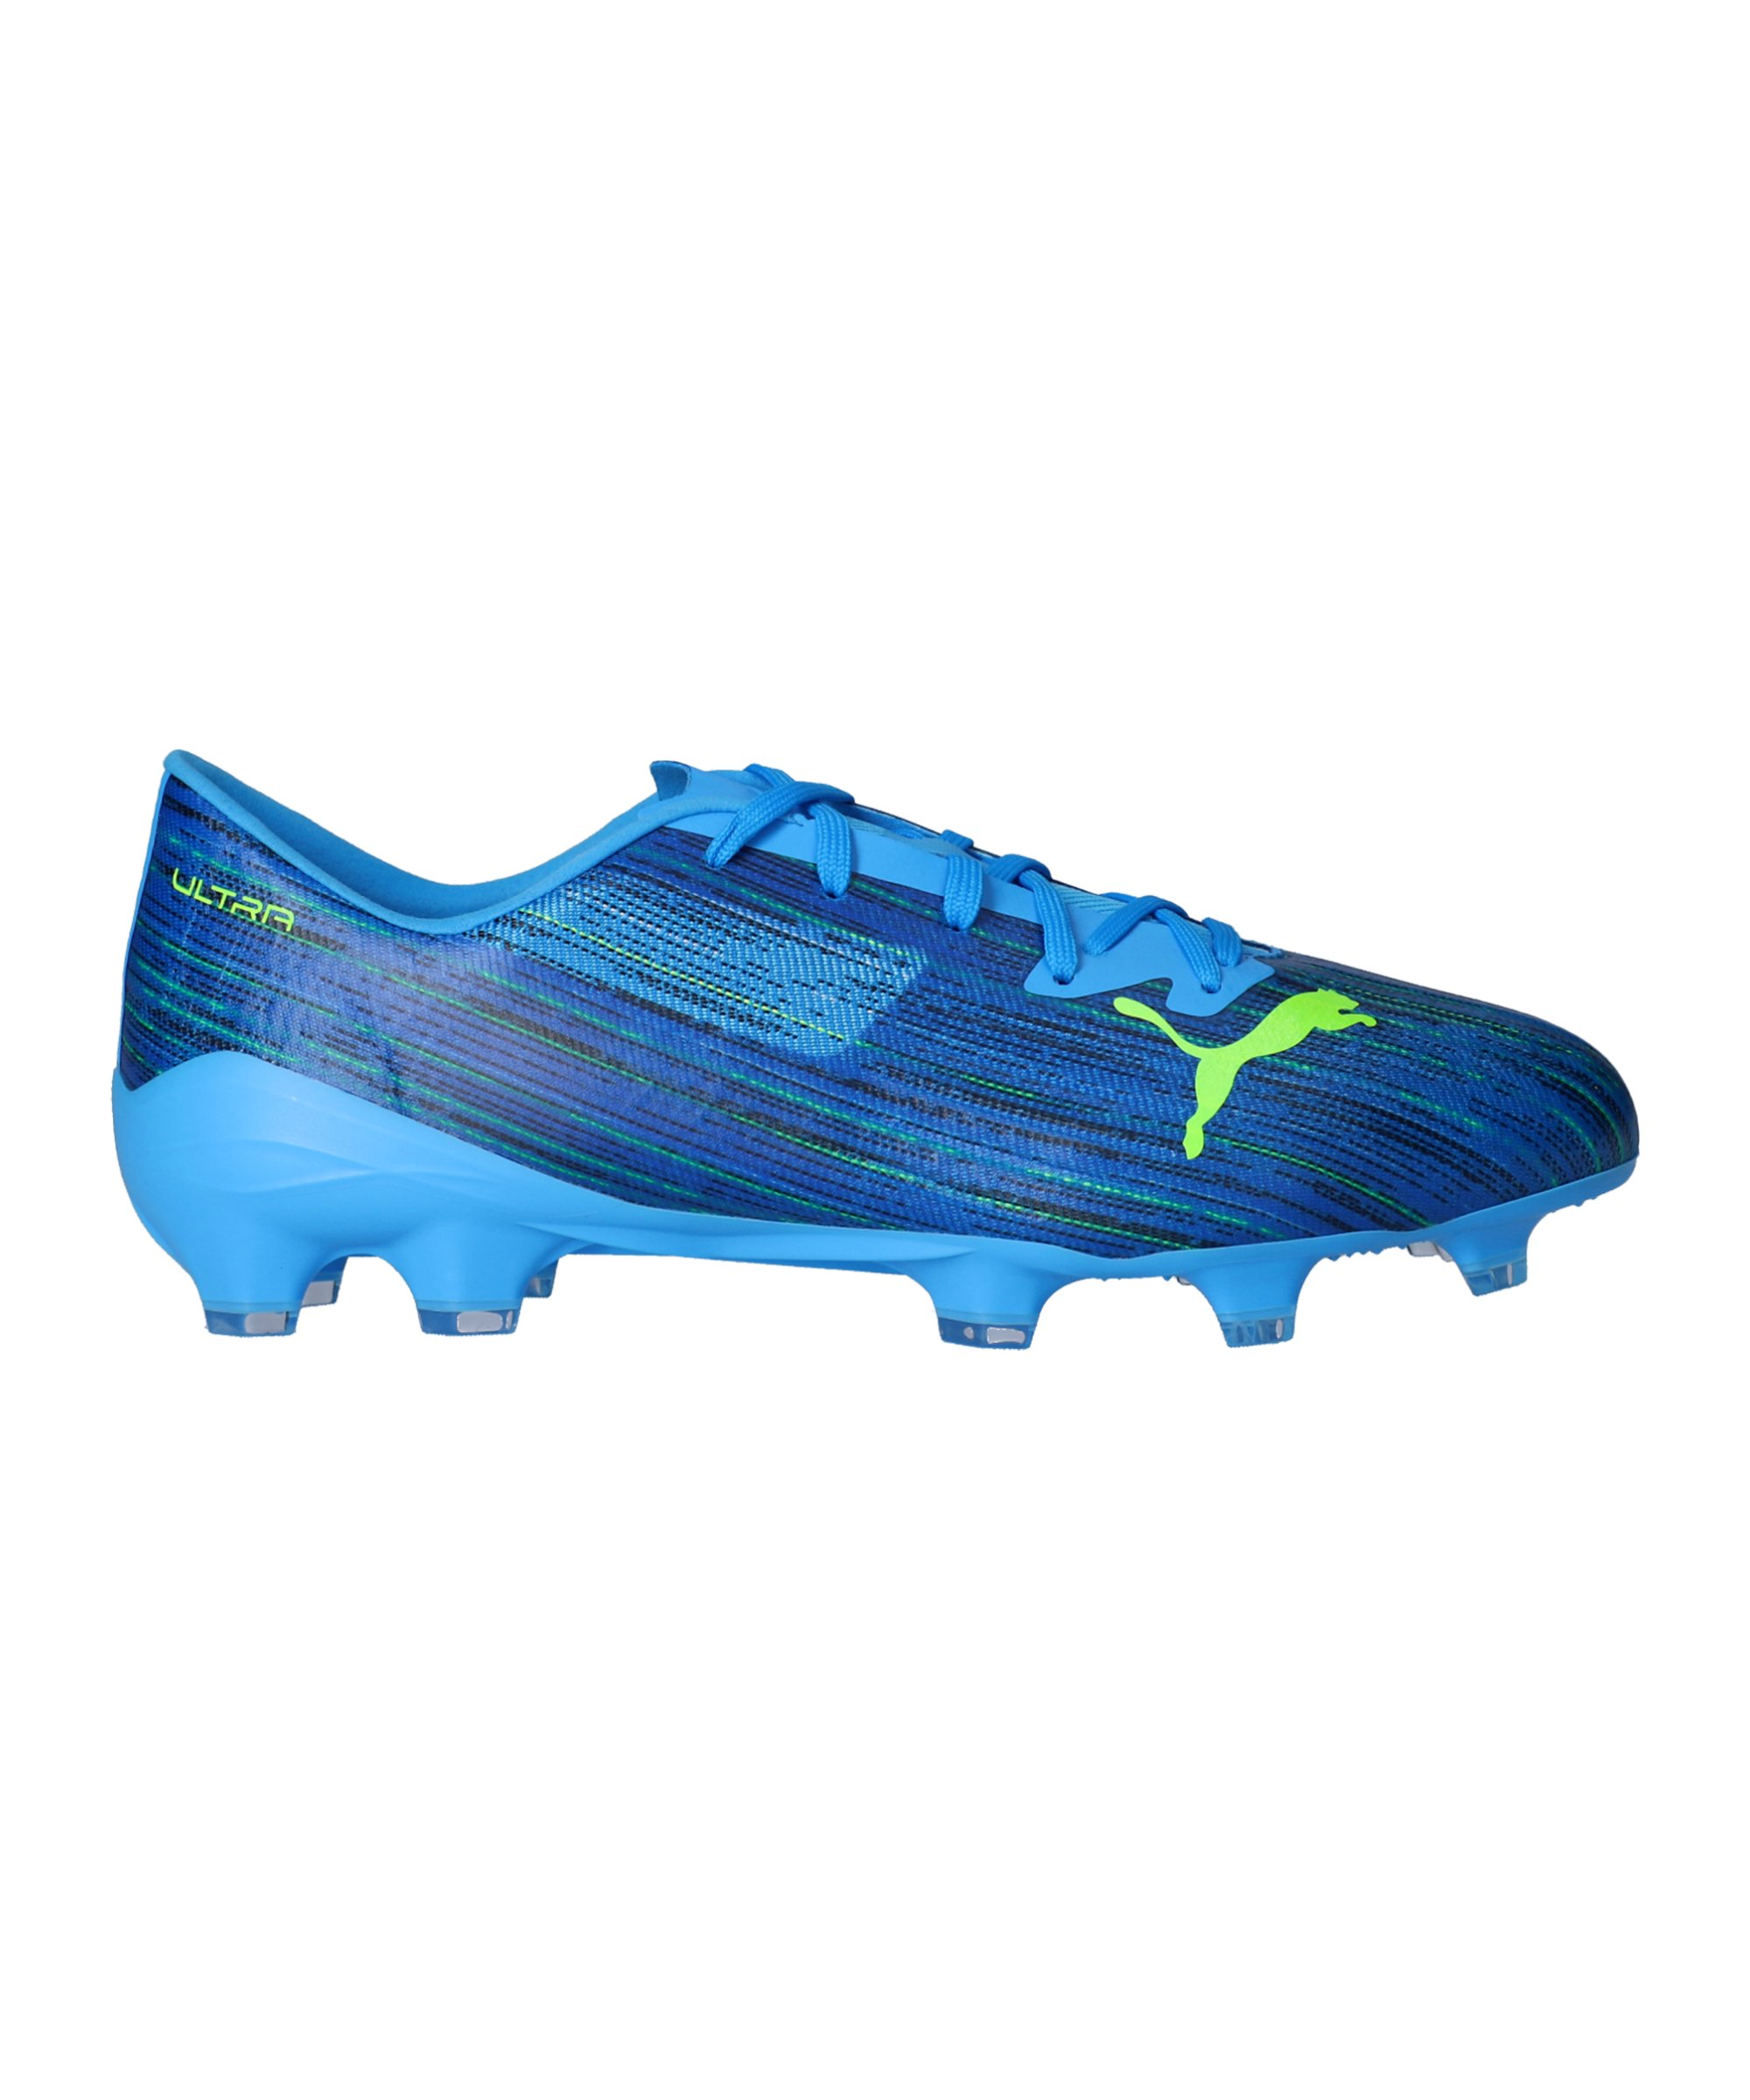 PUMA ULTRA Speed of Light 2.2 FG/AG Blau Gelb F01 - blau